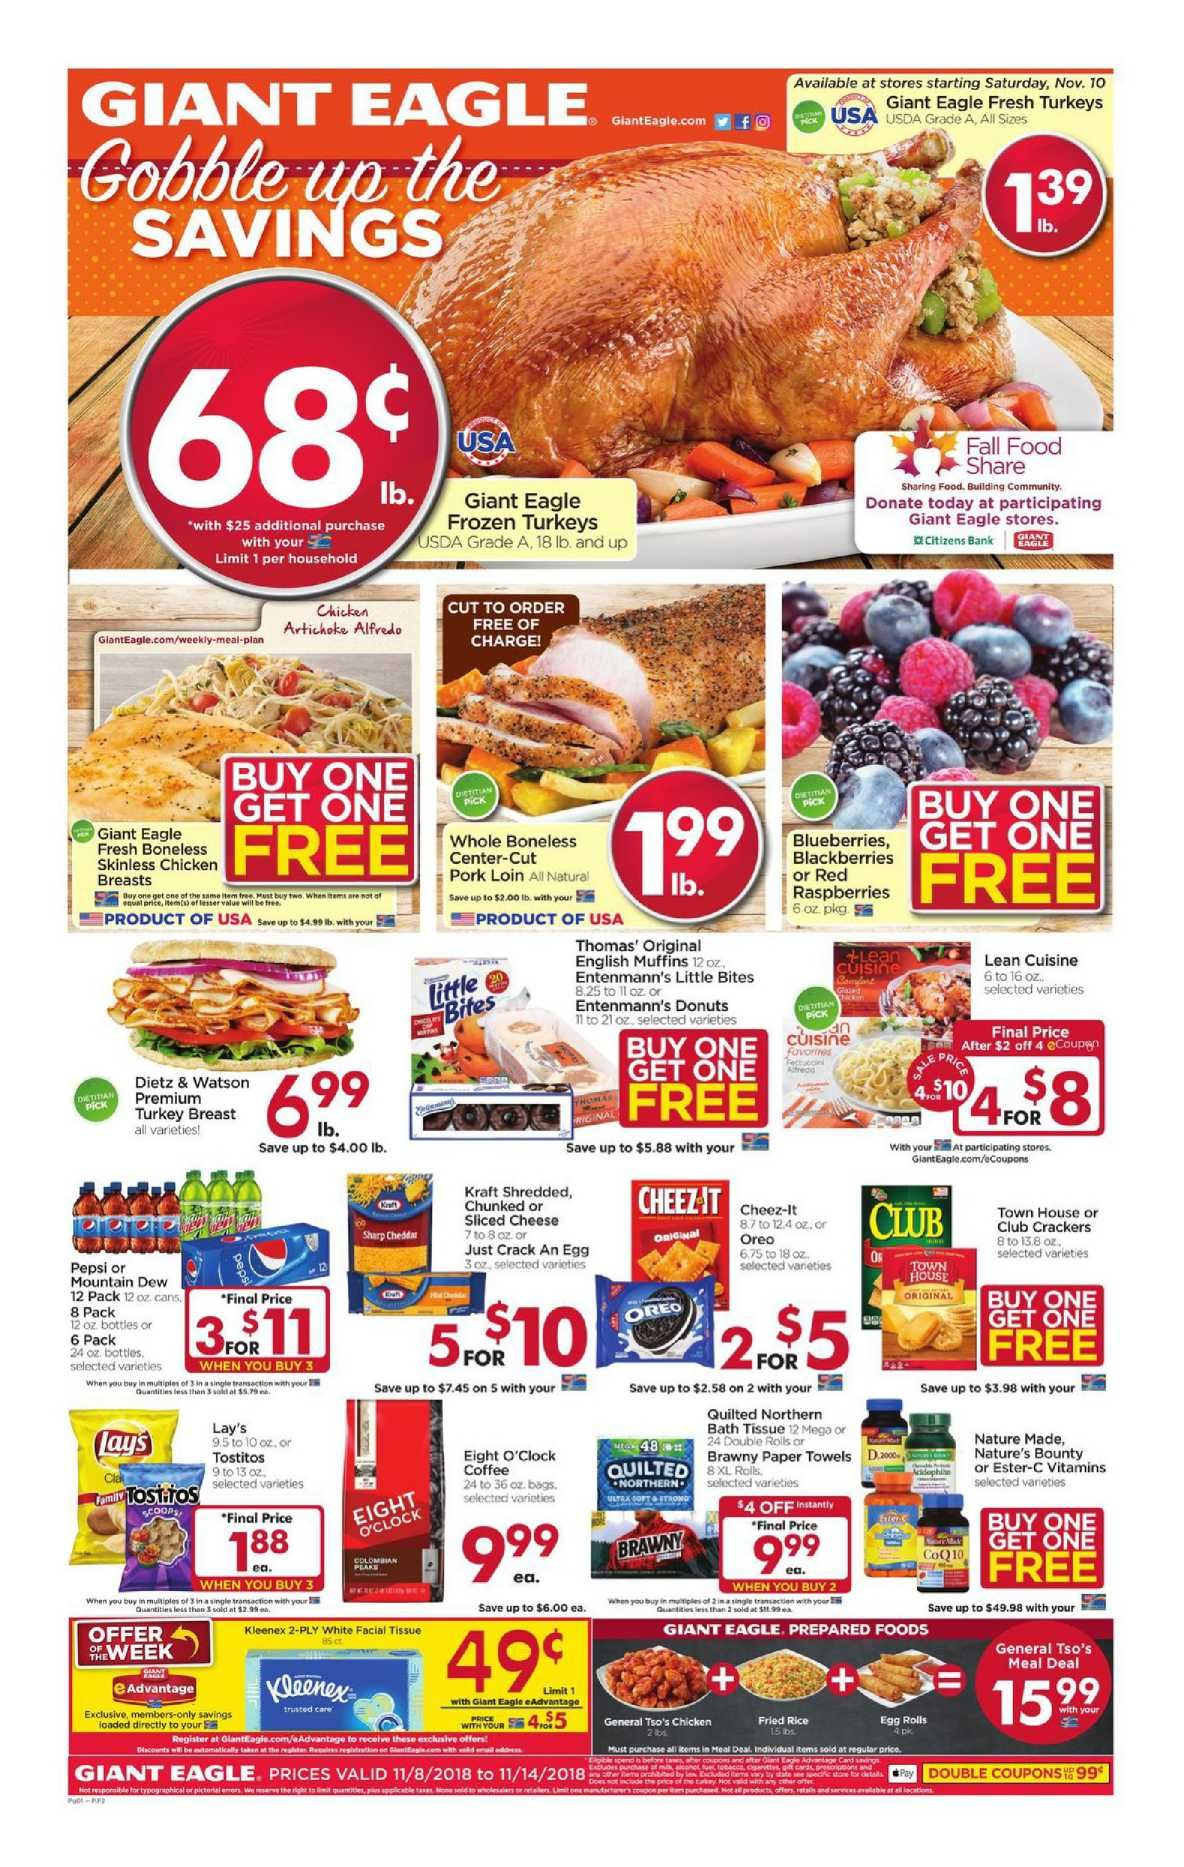 Giant Eagle Weekly Ad Flyer February 27 March 04 2020 Weeklyad123 Com Giant Eagle Weekly Ads Grocery Savings